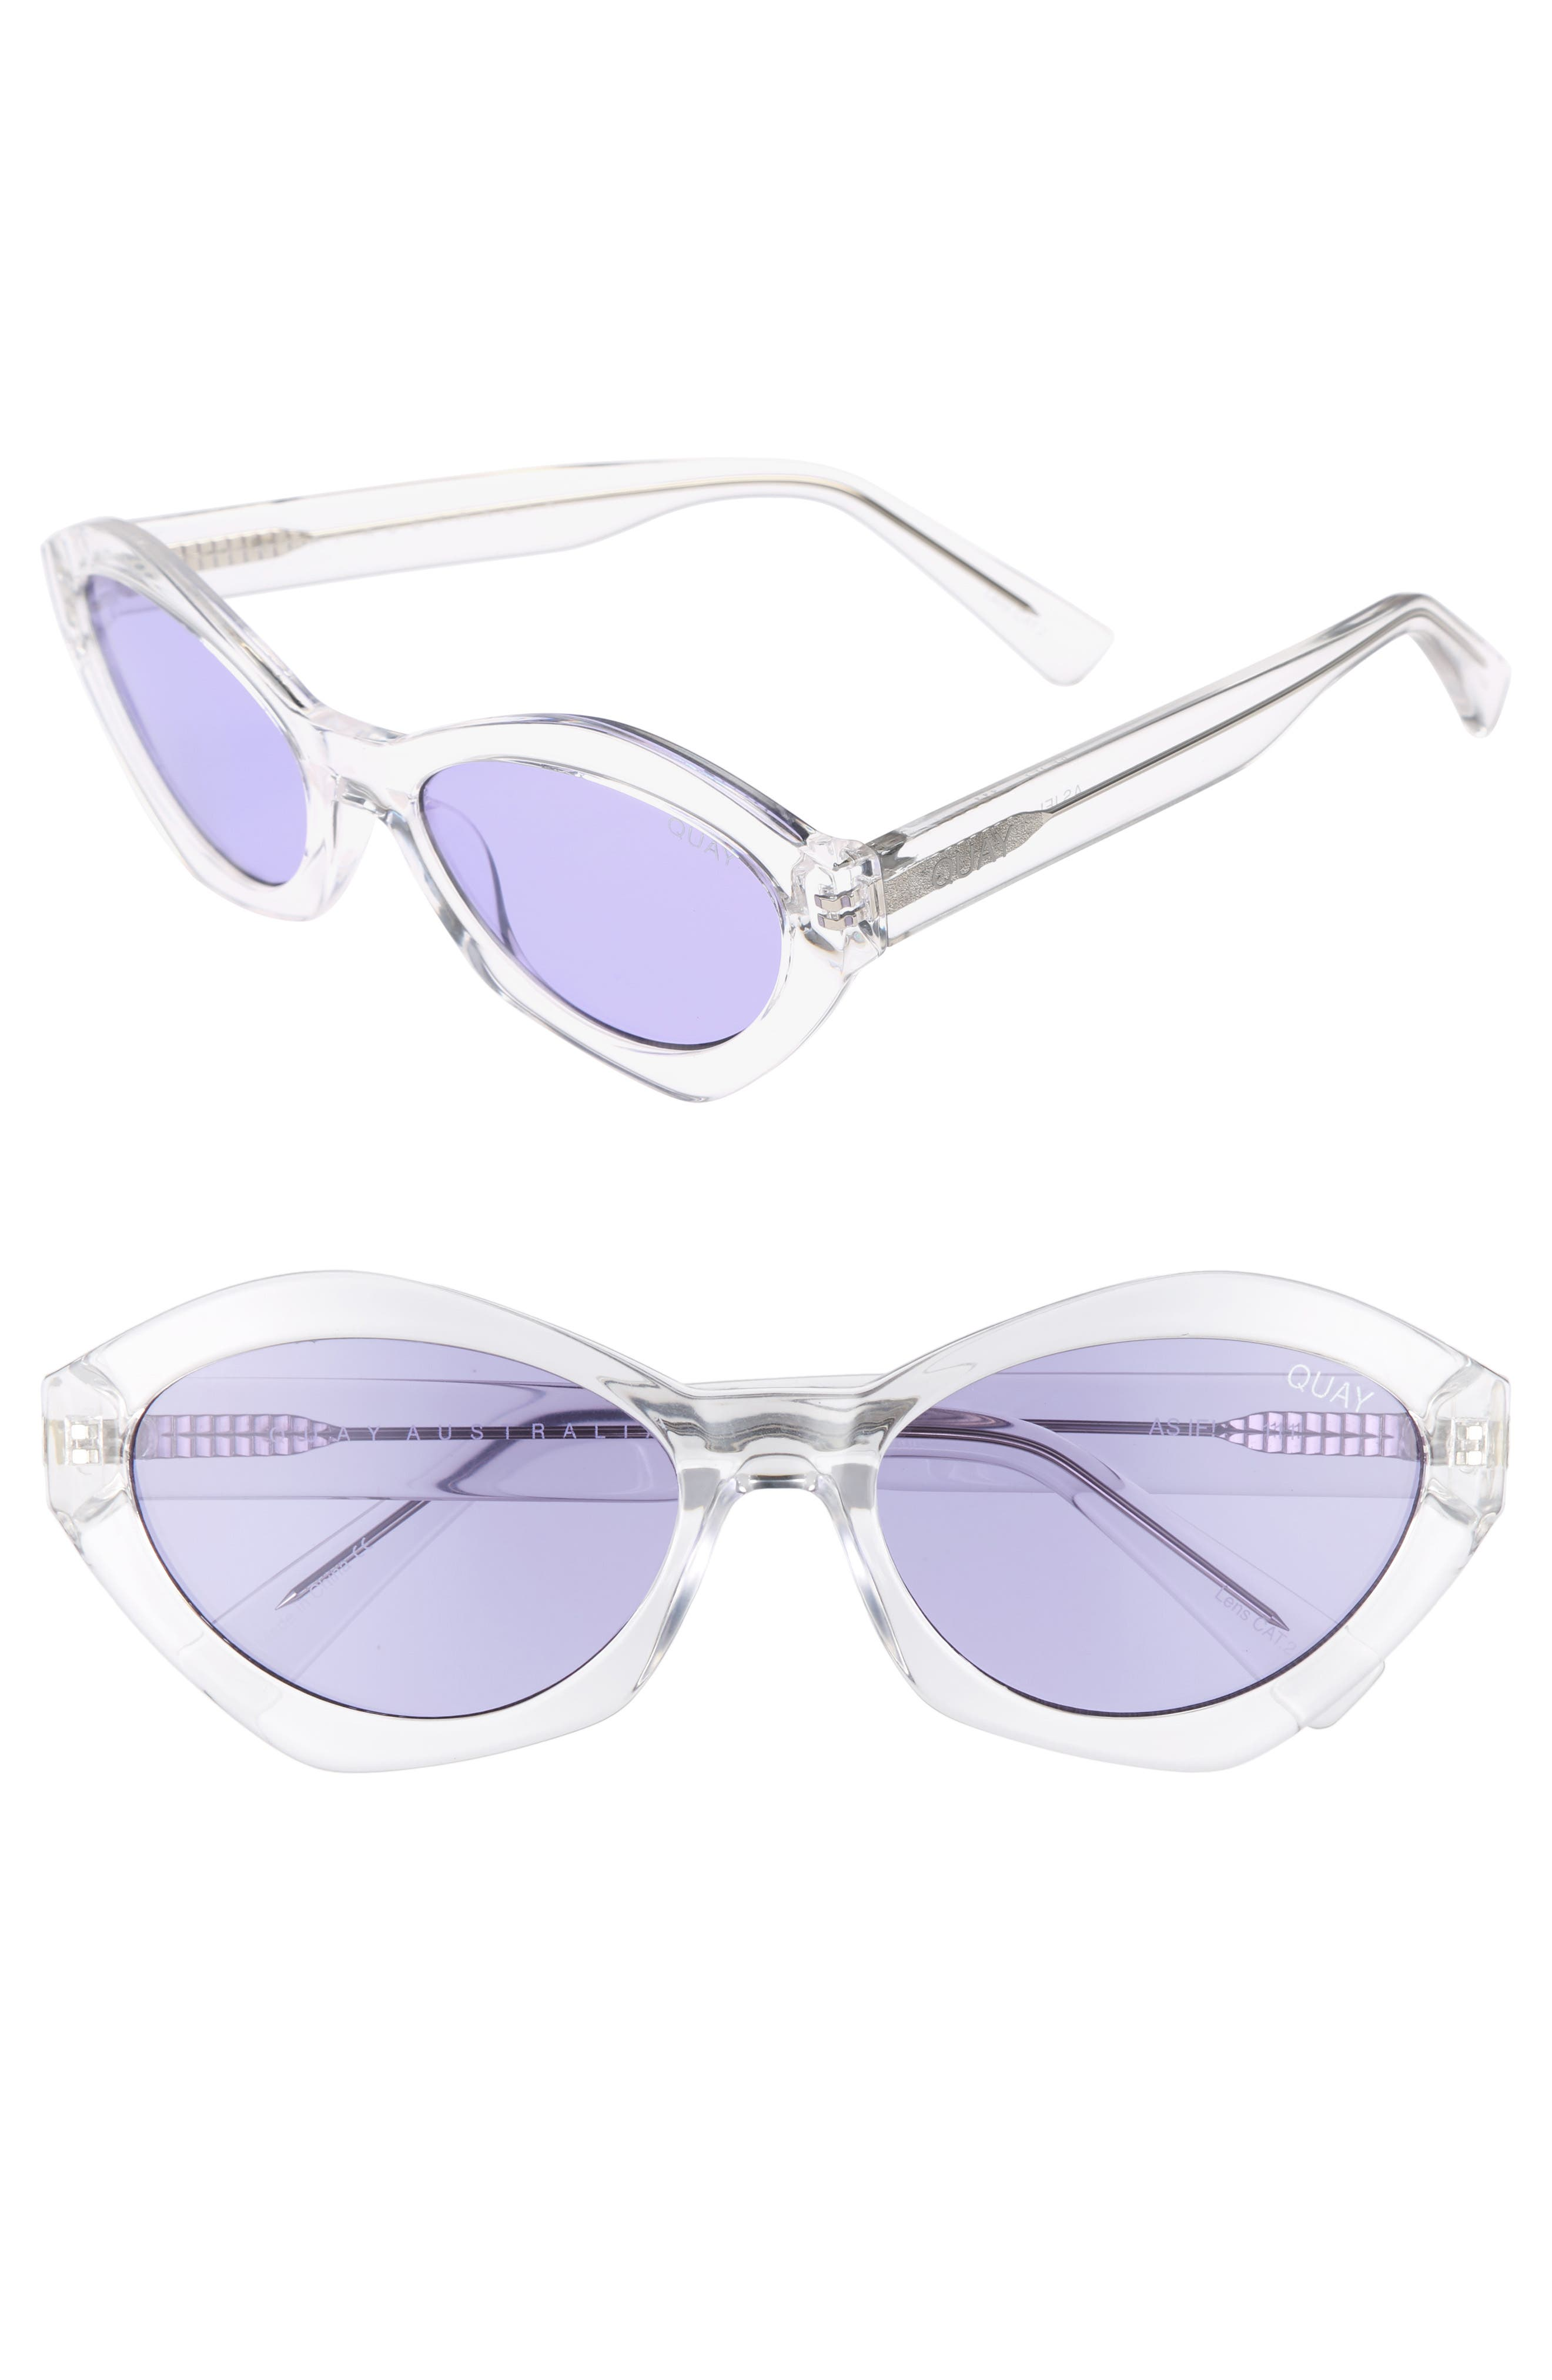 54mm As If Oval Sunglasses,                             Main thumbnail 1, color,                             100